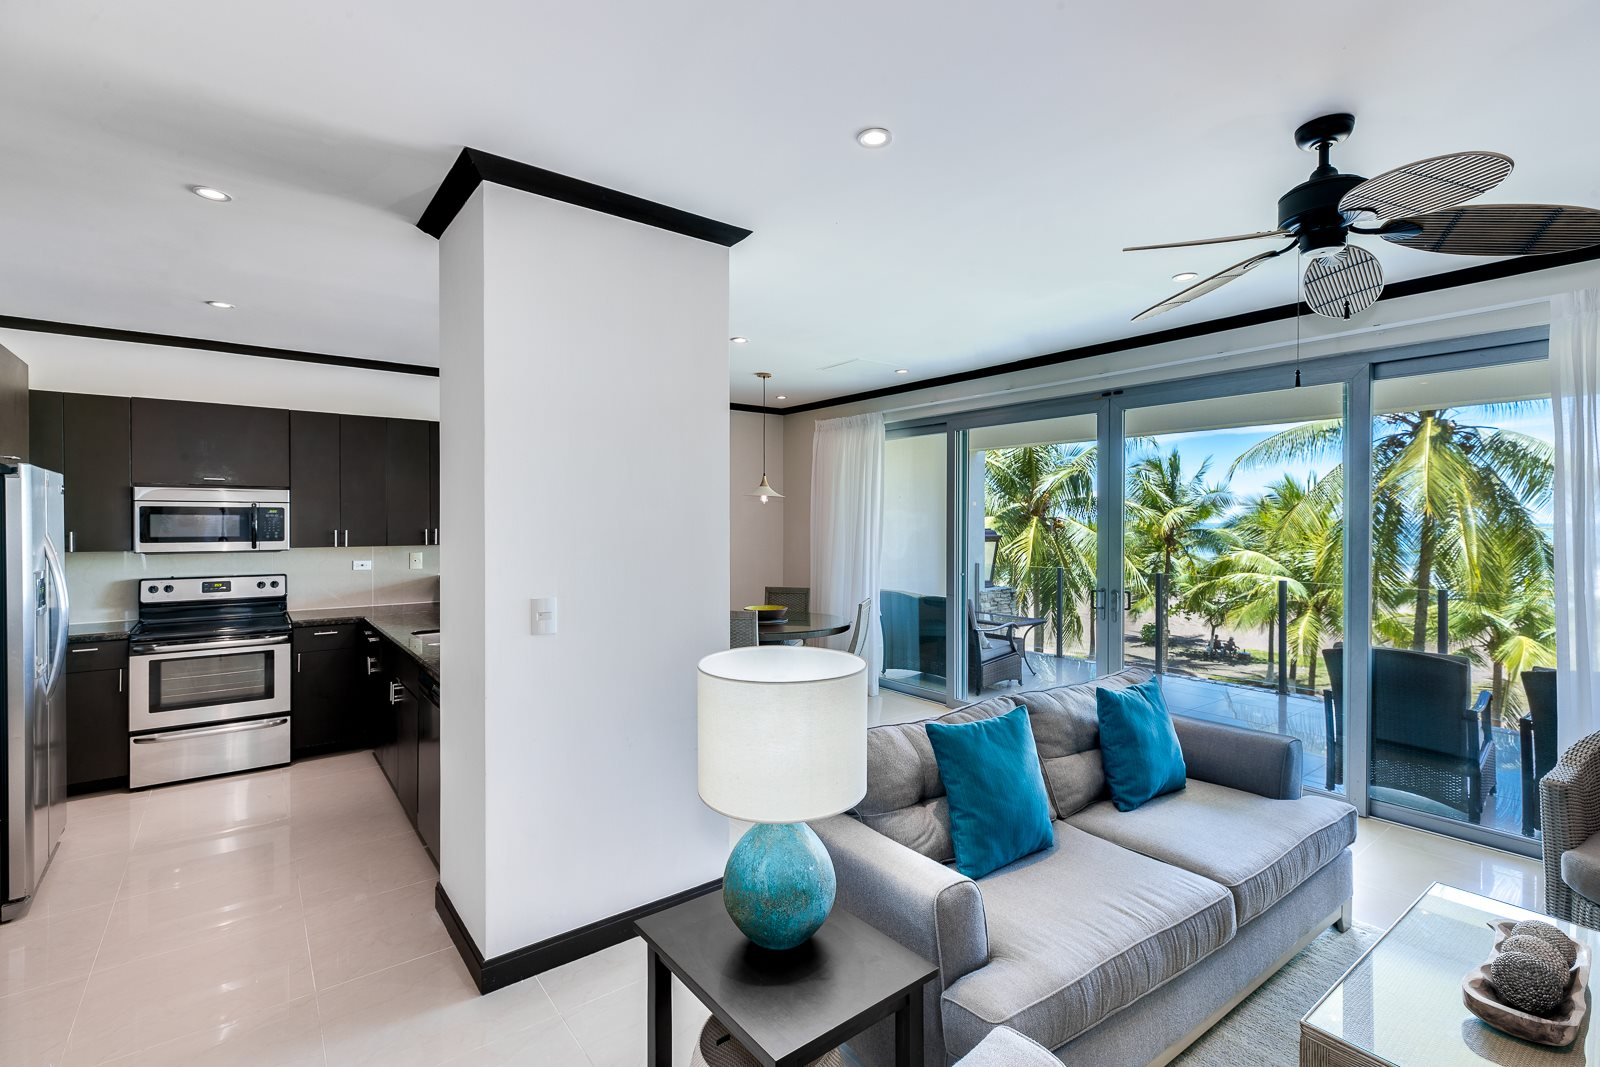 Diamante del Sol 2 Bedroom 2.5 Bathroom Ocean View Condo-REMODELED